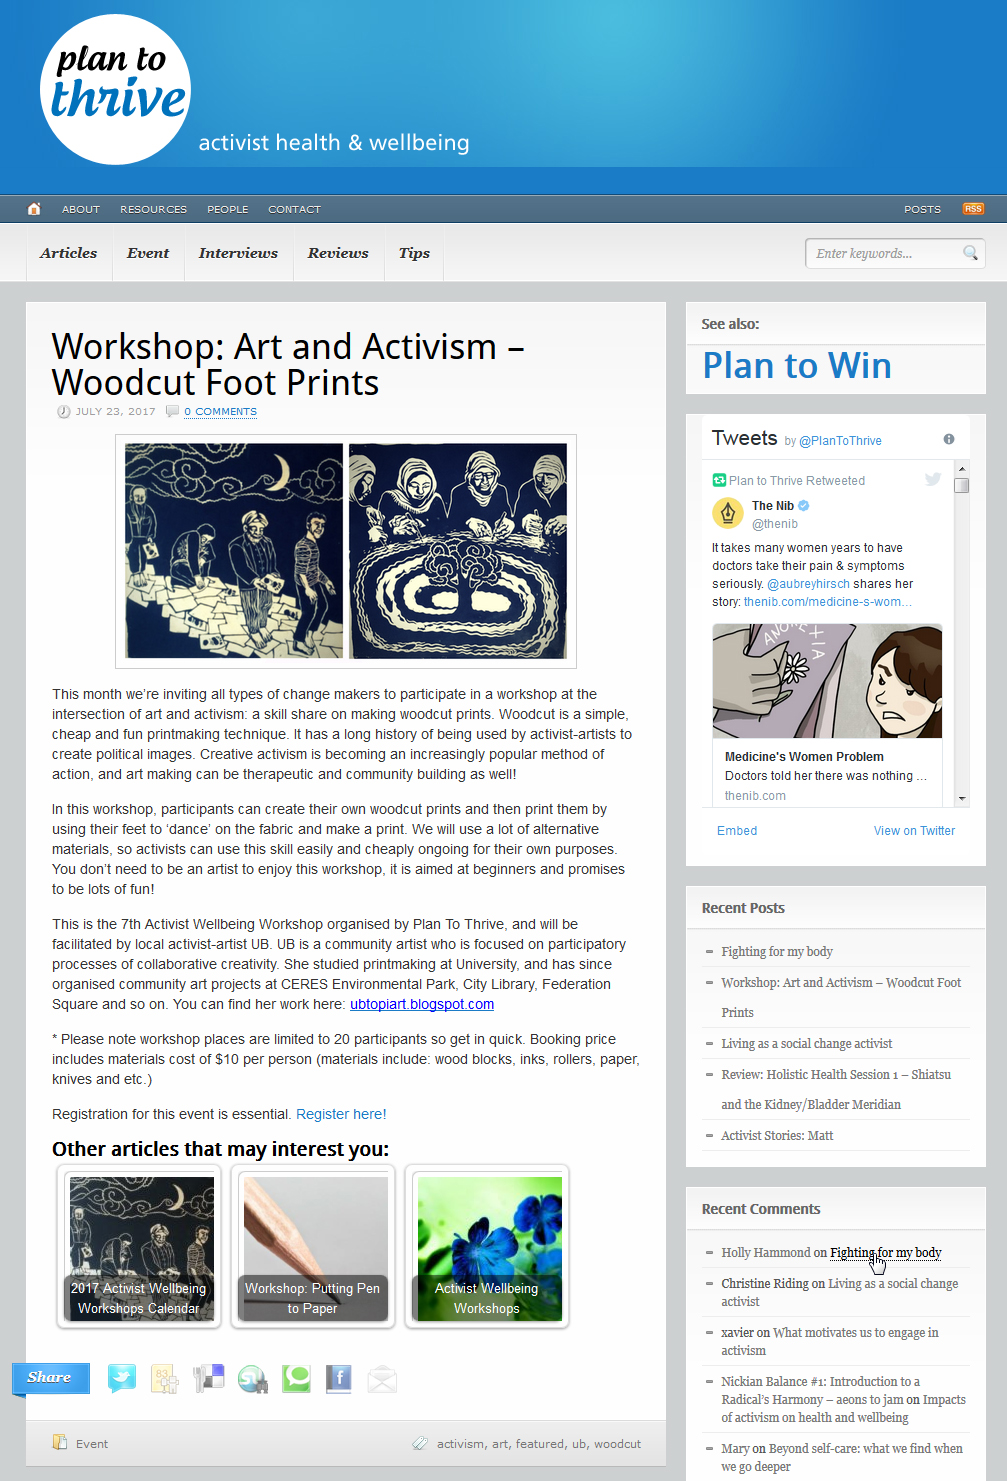 Plan To Thrive-Workshop: Art And Activism-Woodcut Foot Prints